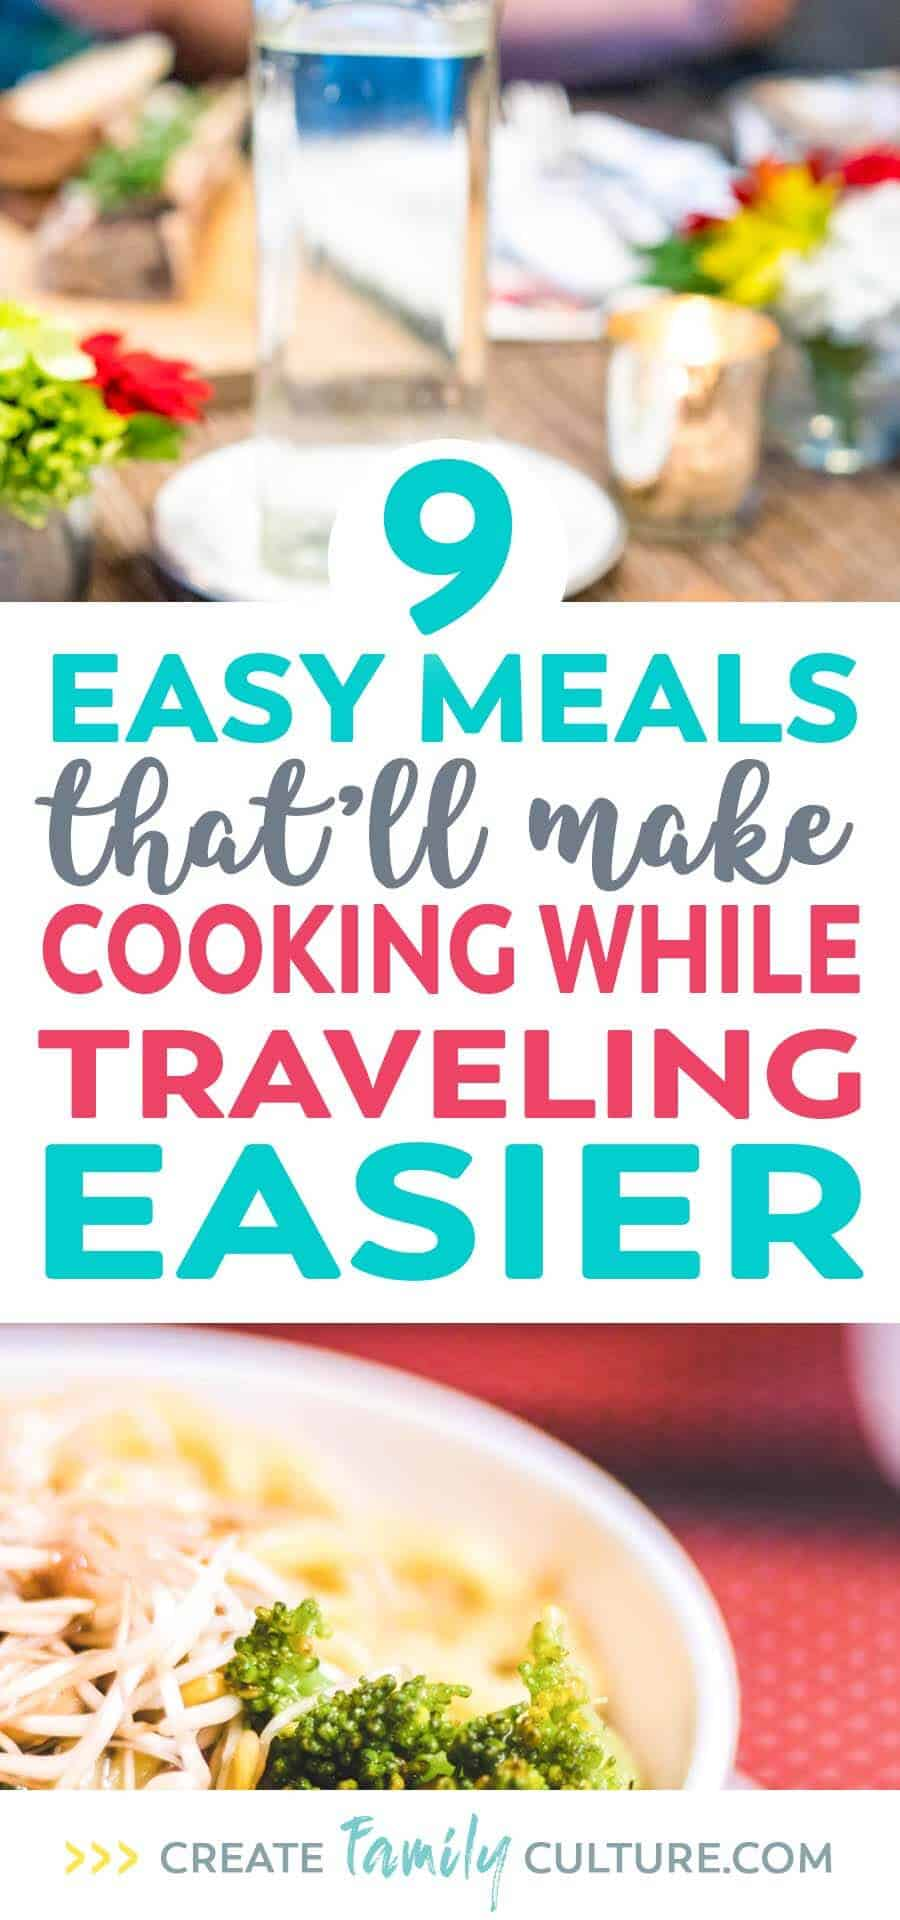 Easy Meals for Traveling | Cooking on Vacation | Simple Recipes | Travel Tips